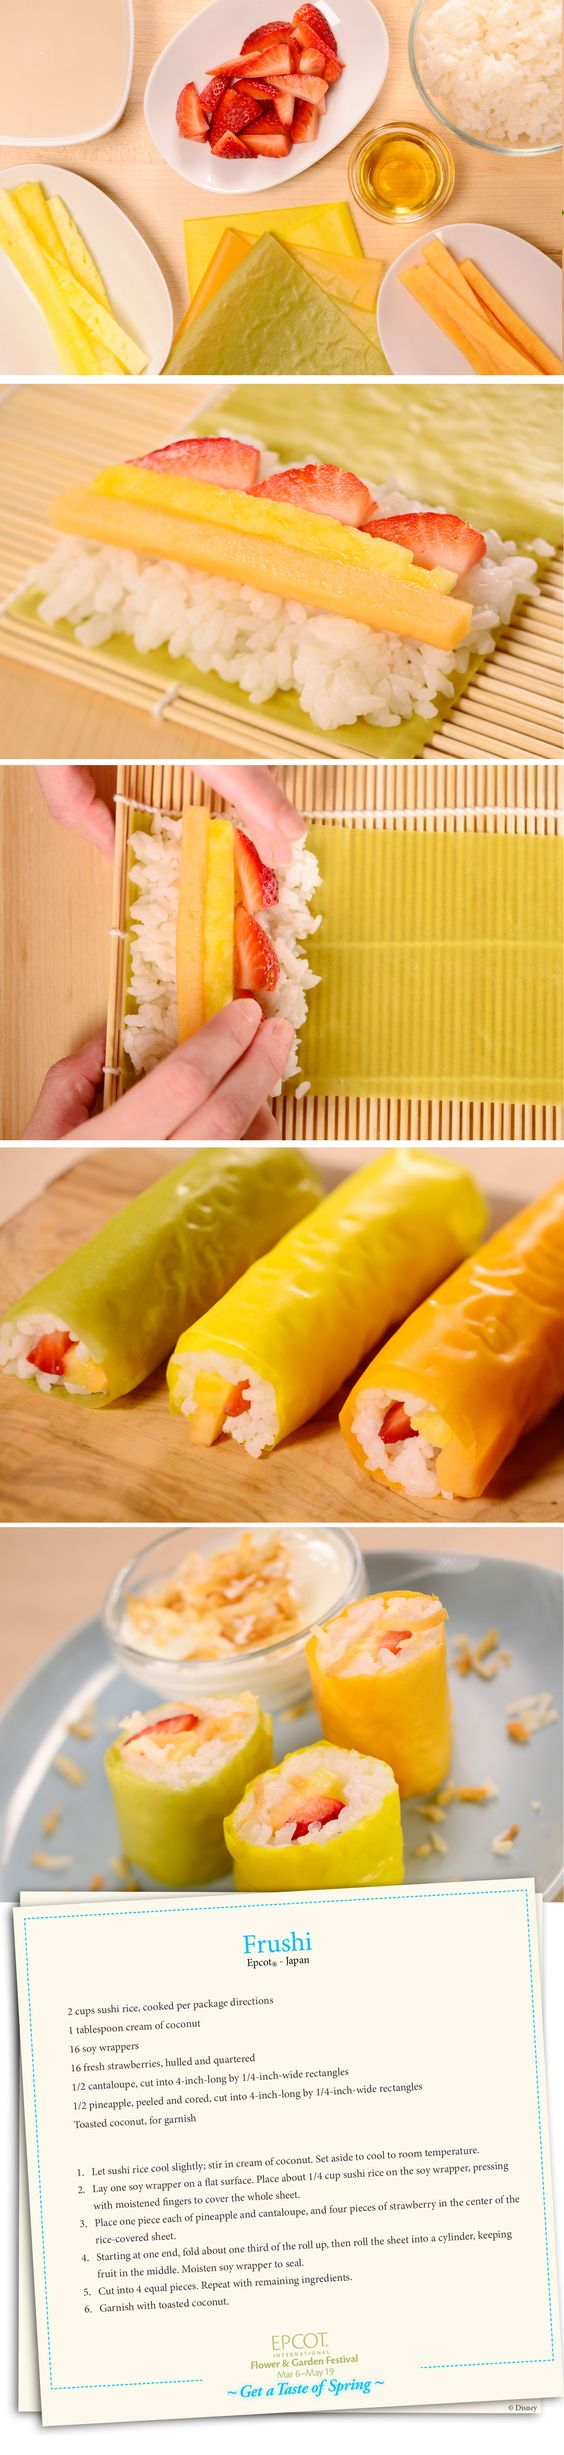 Frushi: Prepare 2c sushi rice. While warm, add 1 tbs coconut cream. Take a soy wrapper (or colored pancake) and fill it with rice, pineapple, cantaloupe